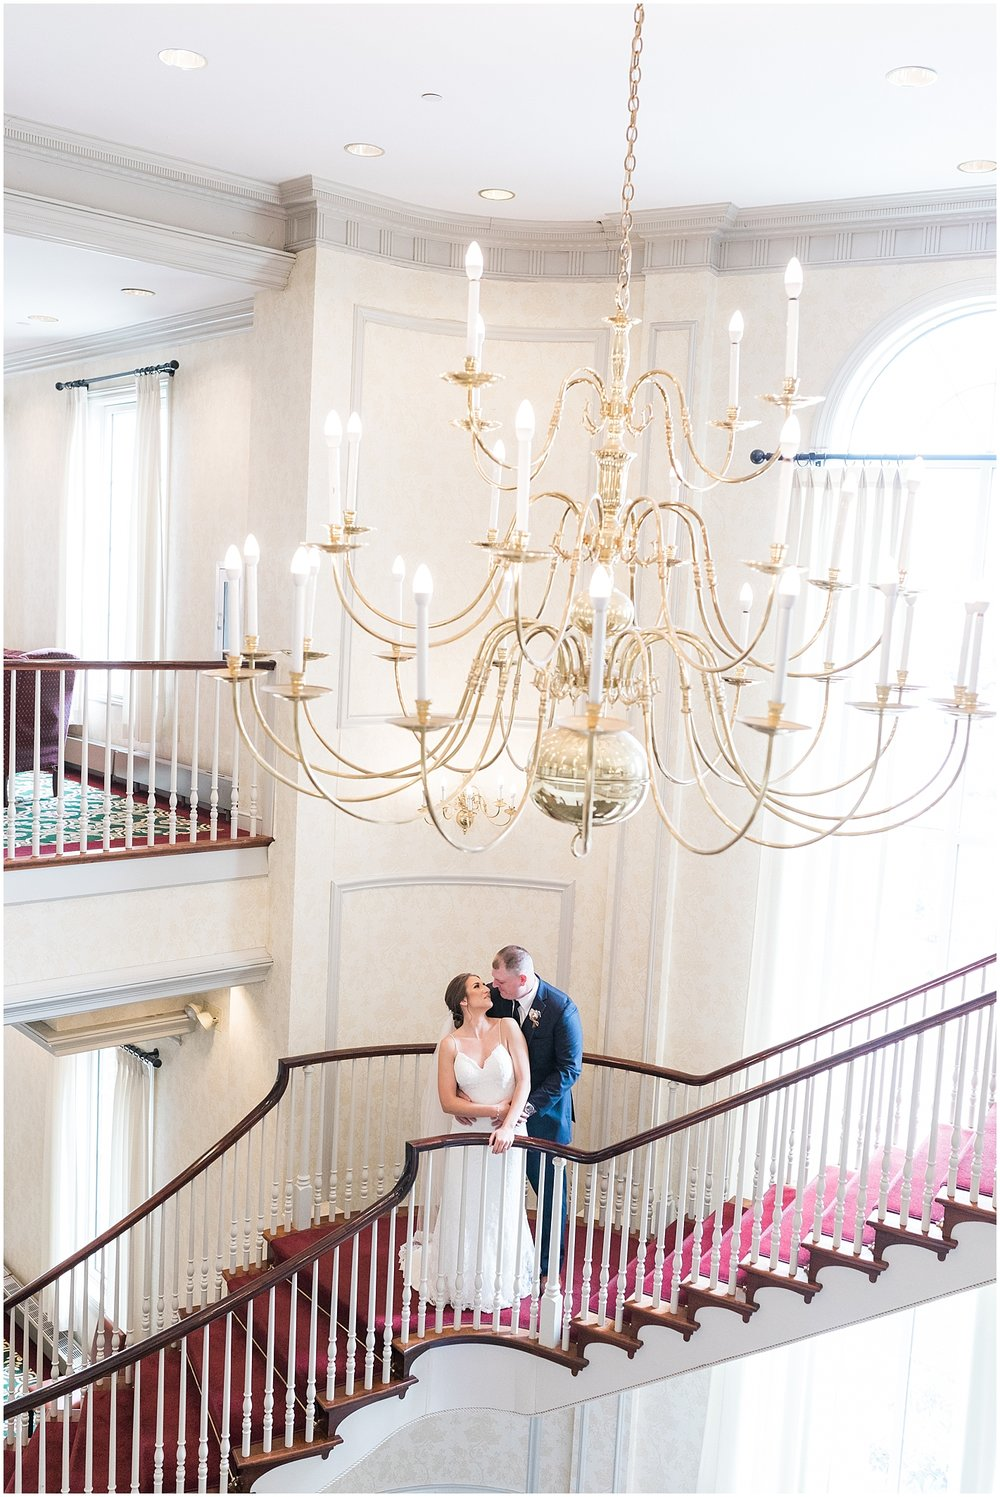 grand staircase bride and groom portrait by Alyssa Parker Photography